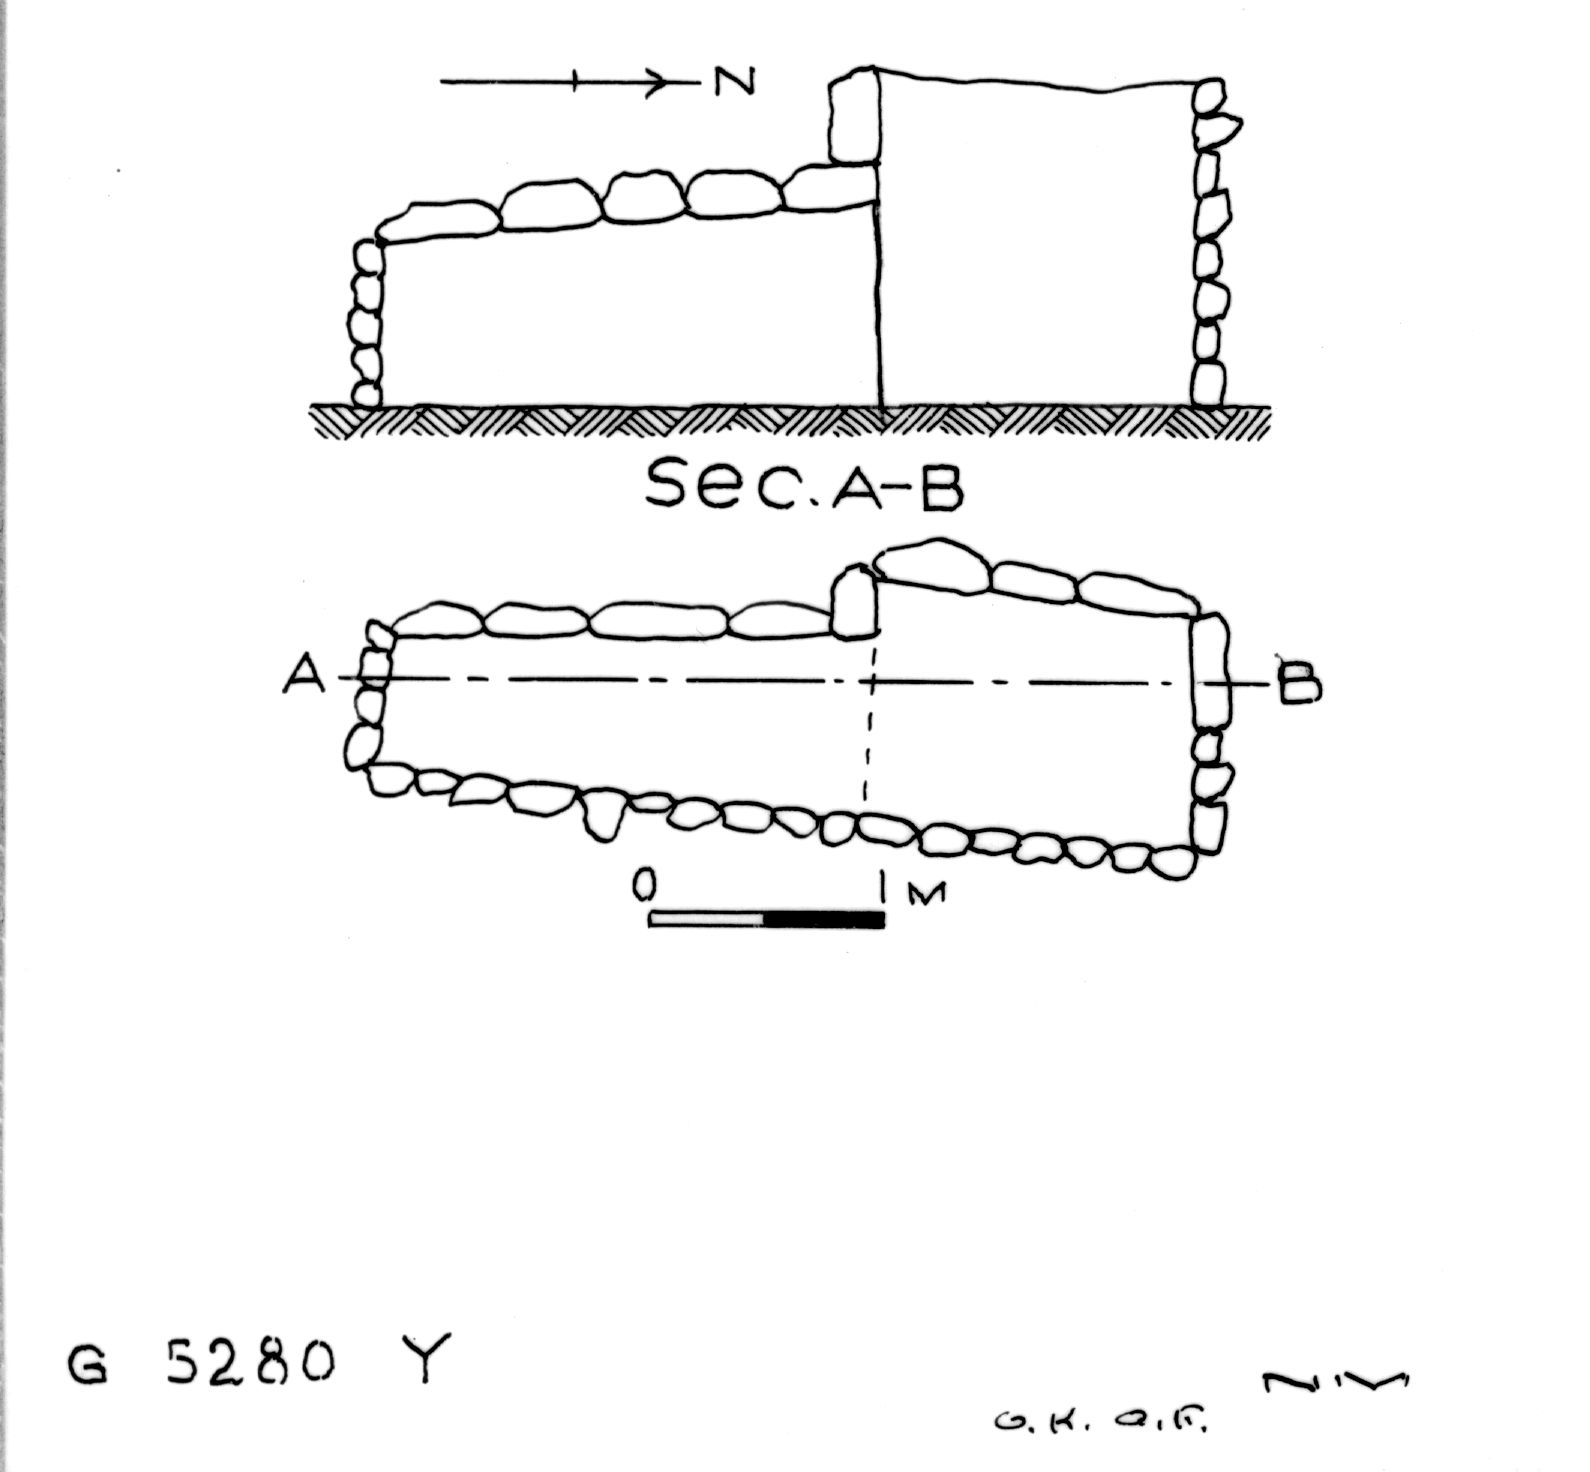 Maps and plans: G 2320 = G 5280, Shaft Y